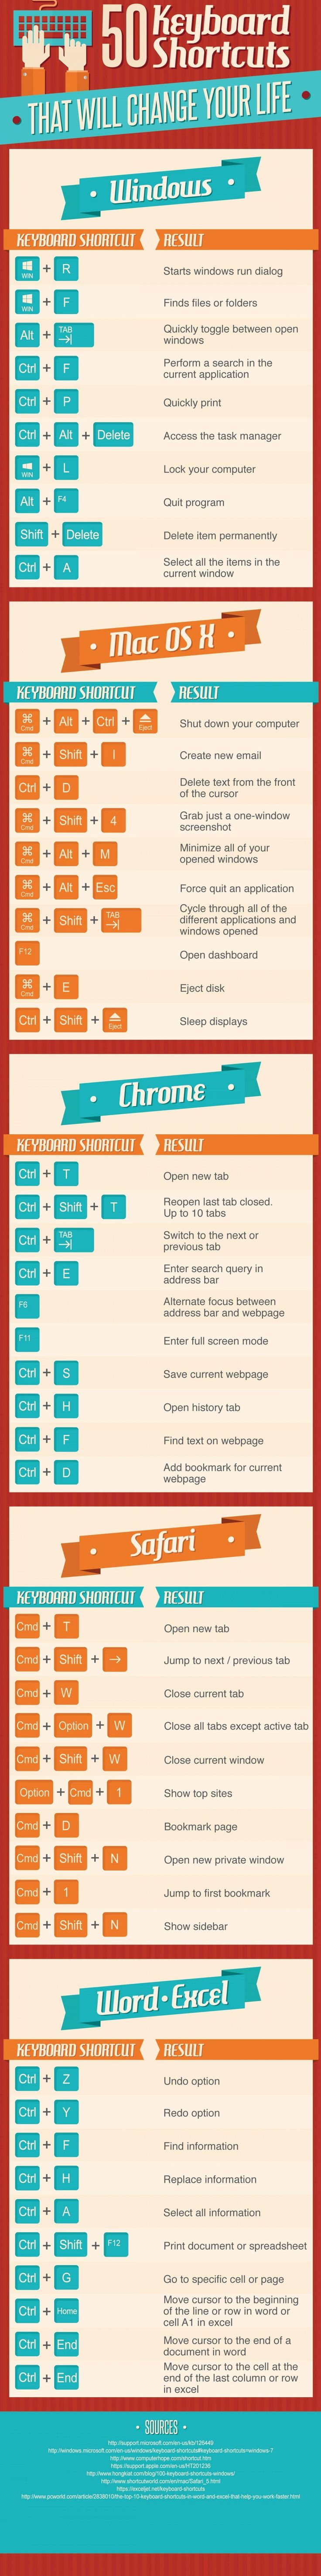 We all have a favorite keyboard shortcut that we use every day at work, saving us time and boosting productivity.  Well... imagine you had 50 at your disposal! This infographic from Conosco highlights 50 keyboard shortcuts that will change your life - print them out, use them, and you'll remember them off-by-heart in no time.